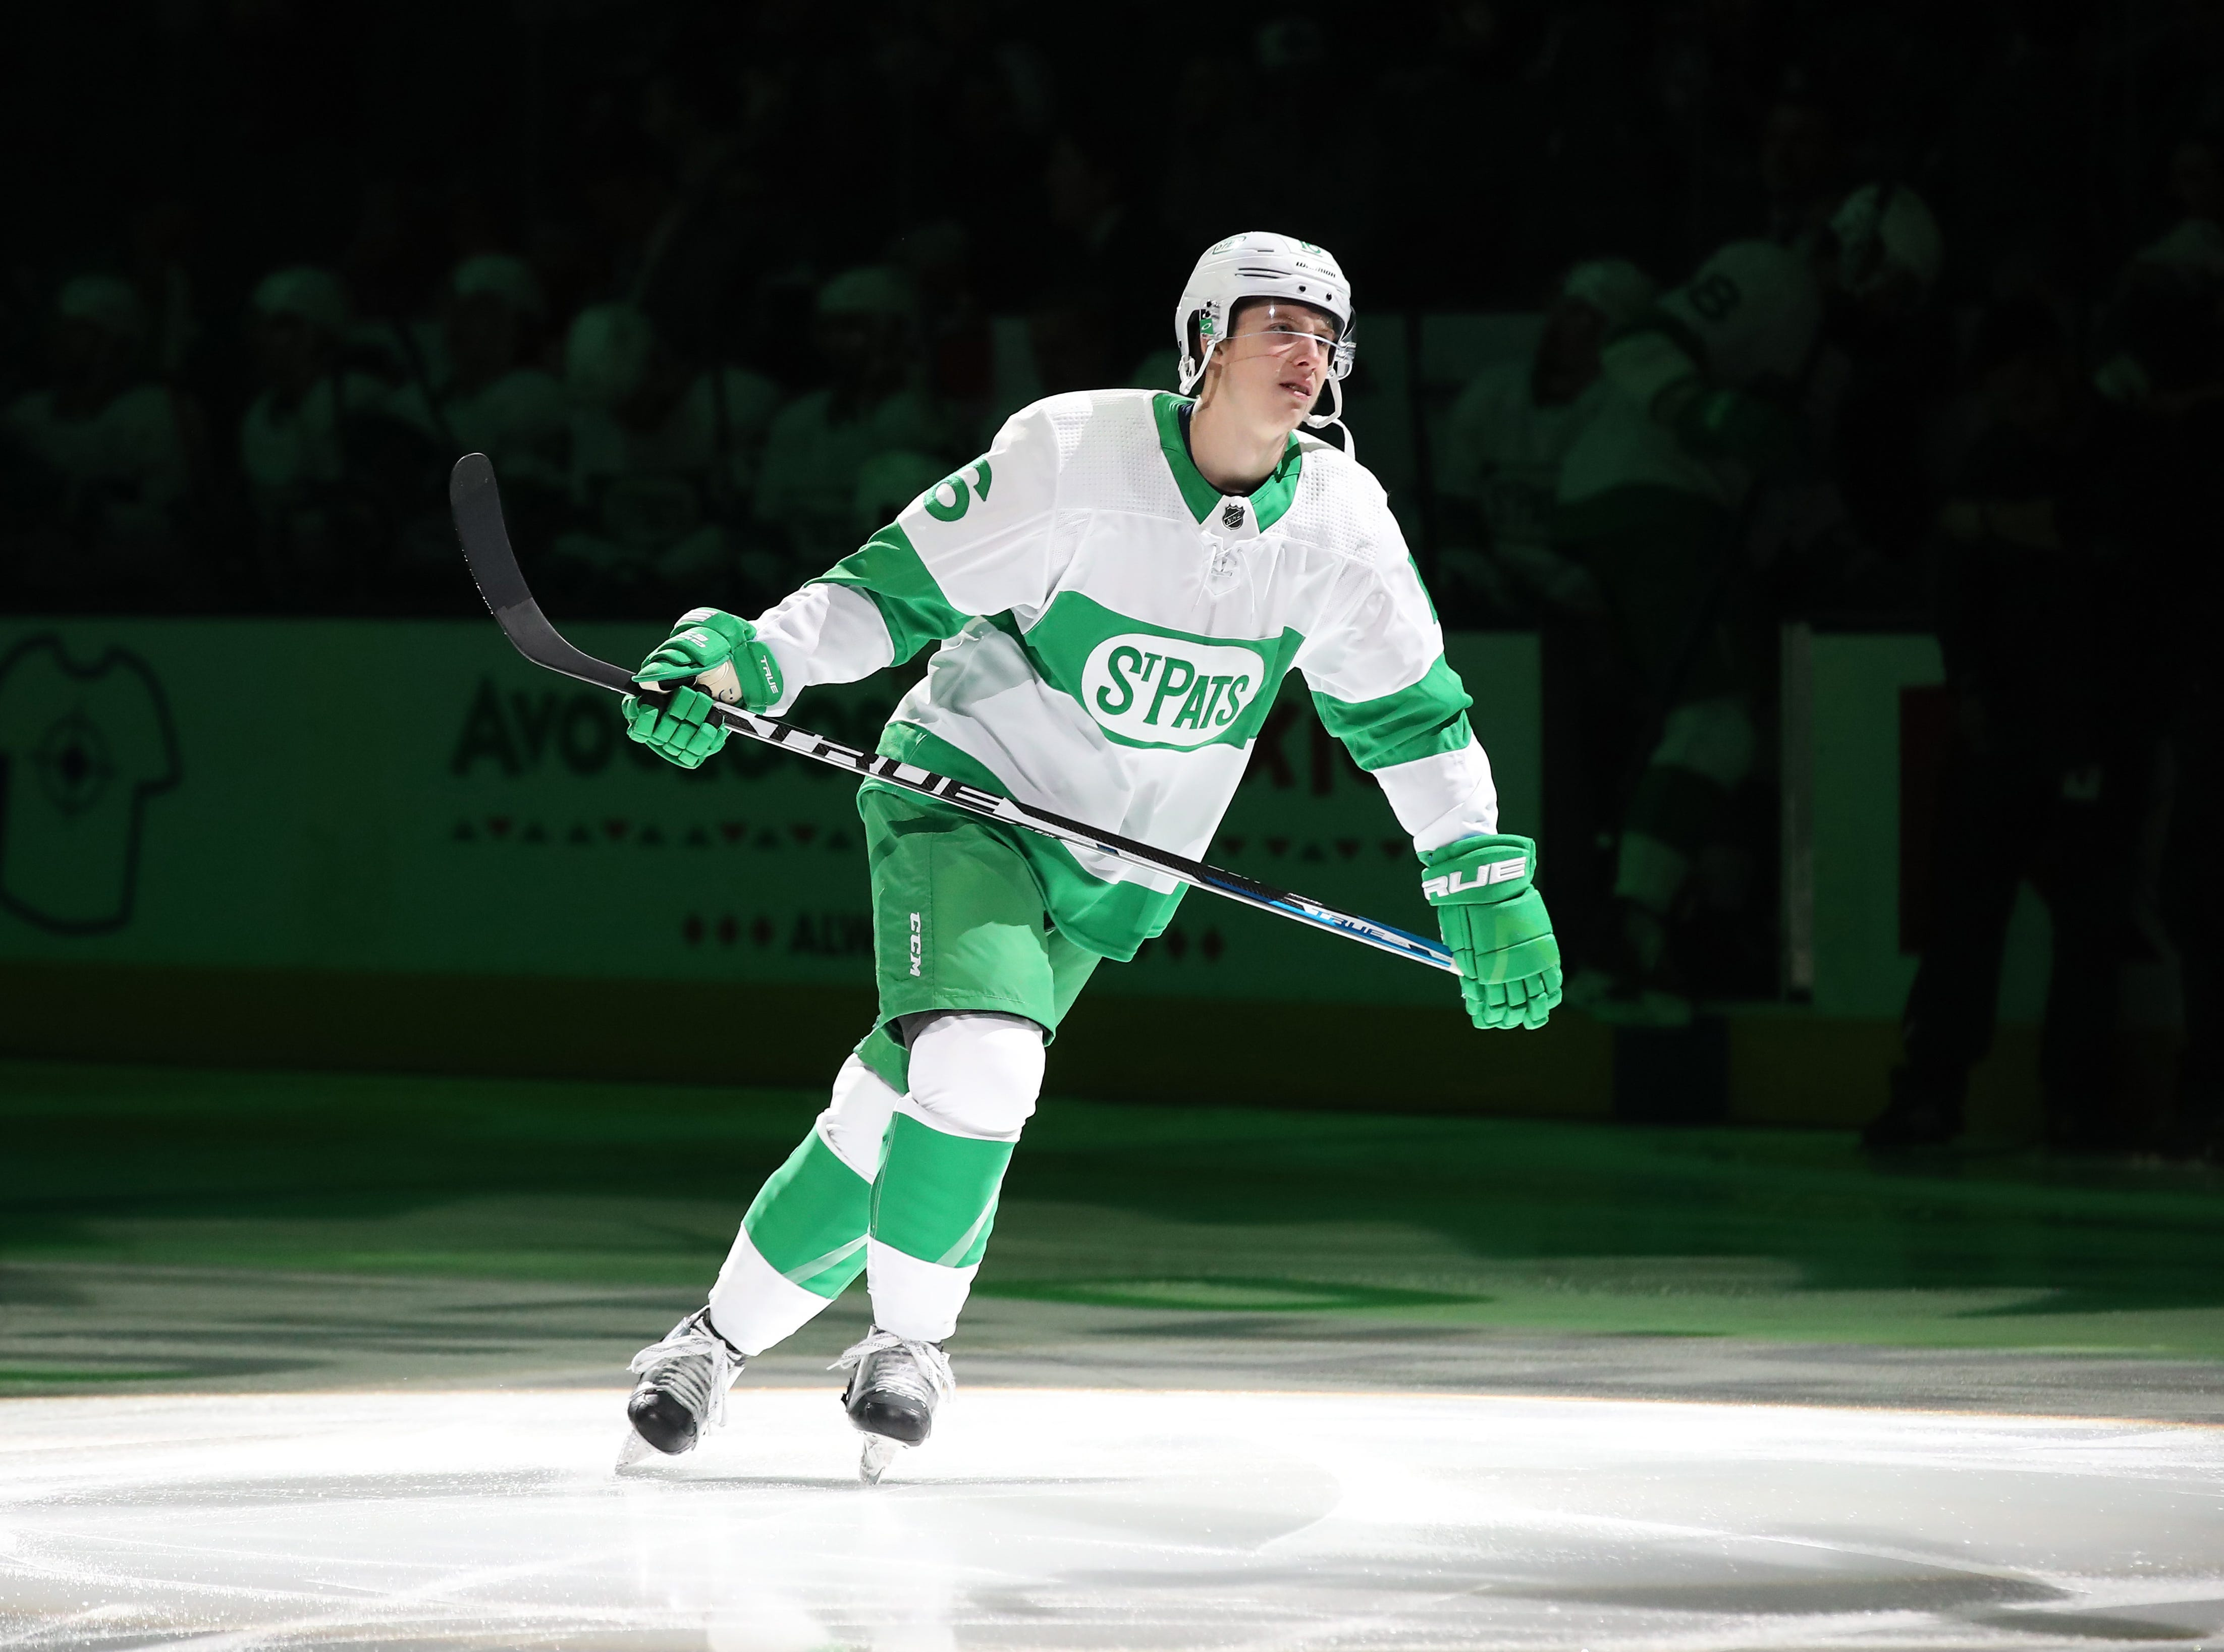 Toronto Maple Leafs right wing Mitchell Marner skates wearing a throwback St. Pats jersey in recognition of St. Patrick's Day before playing against the Philadelphia Flyers at Scotiabank Arena in Toronto.